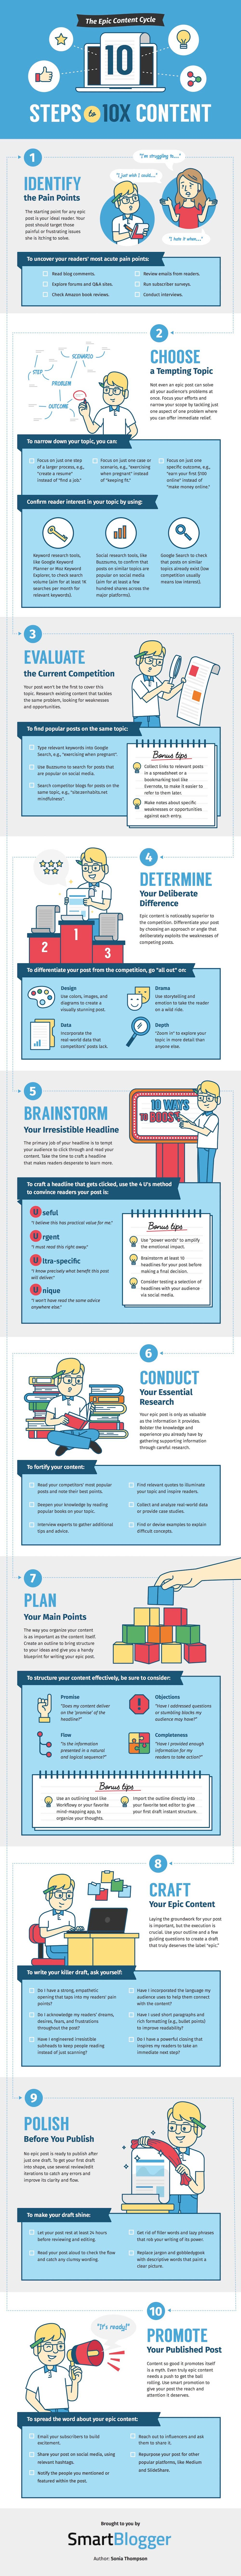 The Epic Content Cycle: 10 Steps to 10X Content - #Infographic